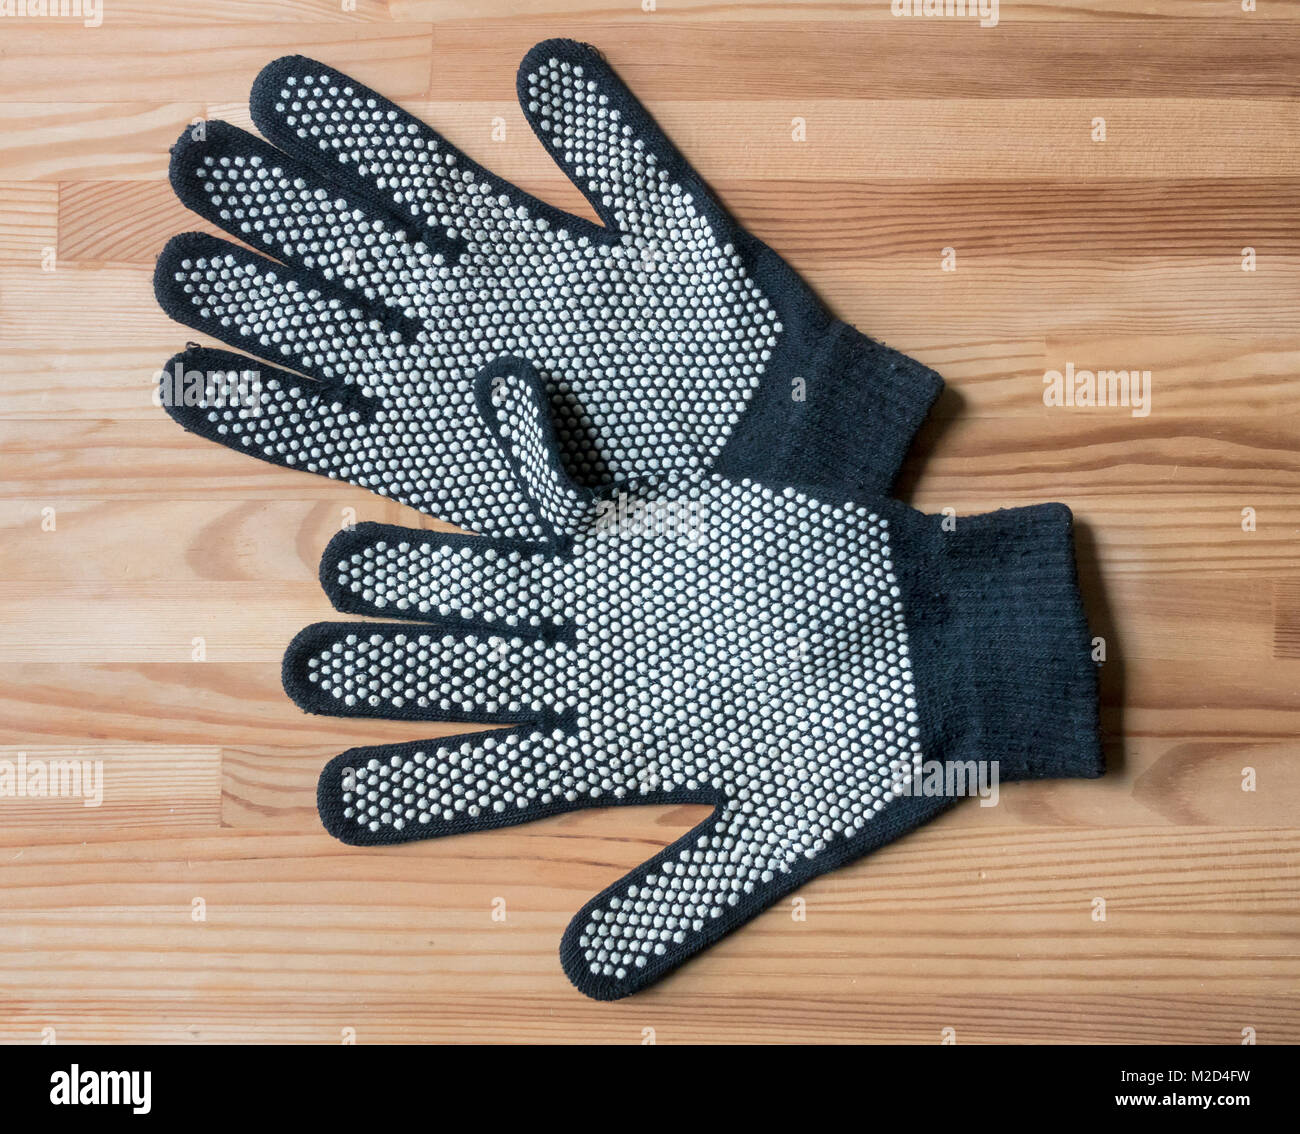 Navy blue woolen gloves with pebbled rubber palms for a better grip - Stock Image